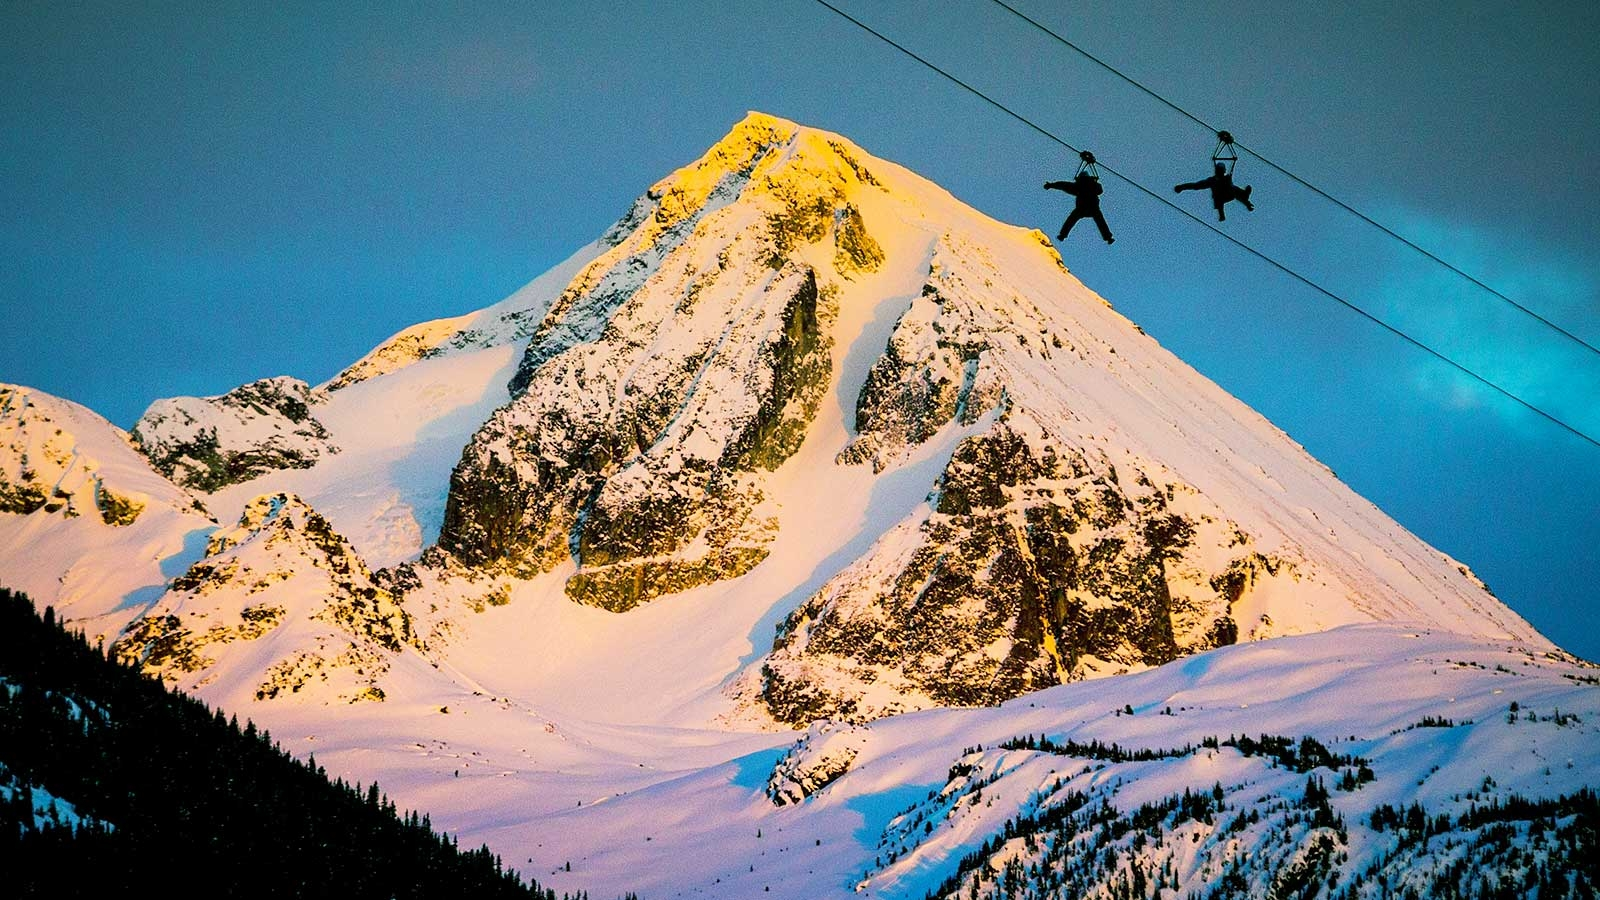 Two people ziplining with mountaintop in background with alpenglow in Whistler